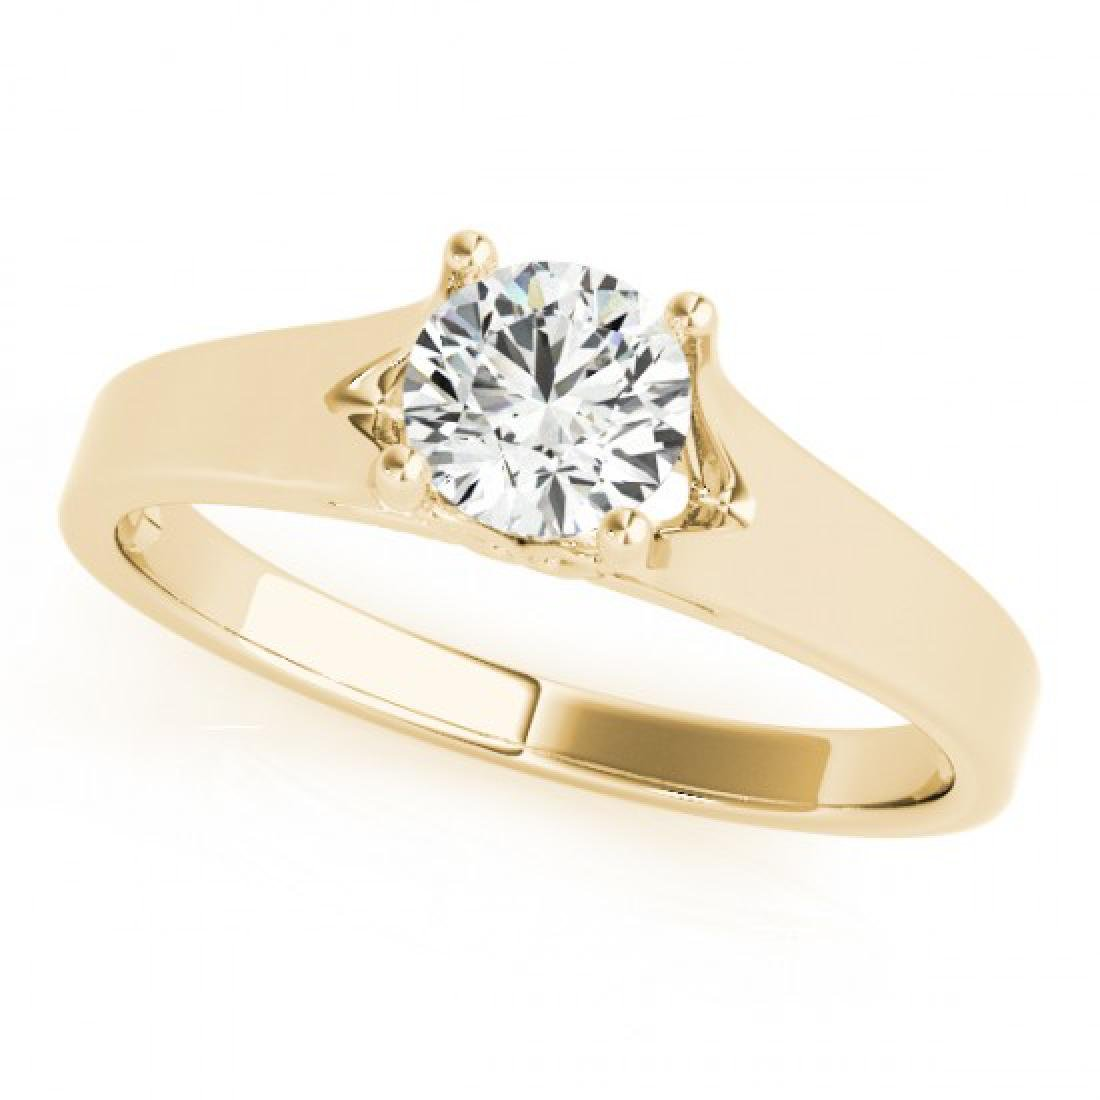 1 CTW Certified VS/SI Diamond Solitaire Ring 14K Yellow